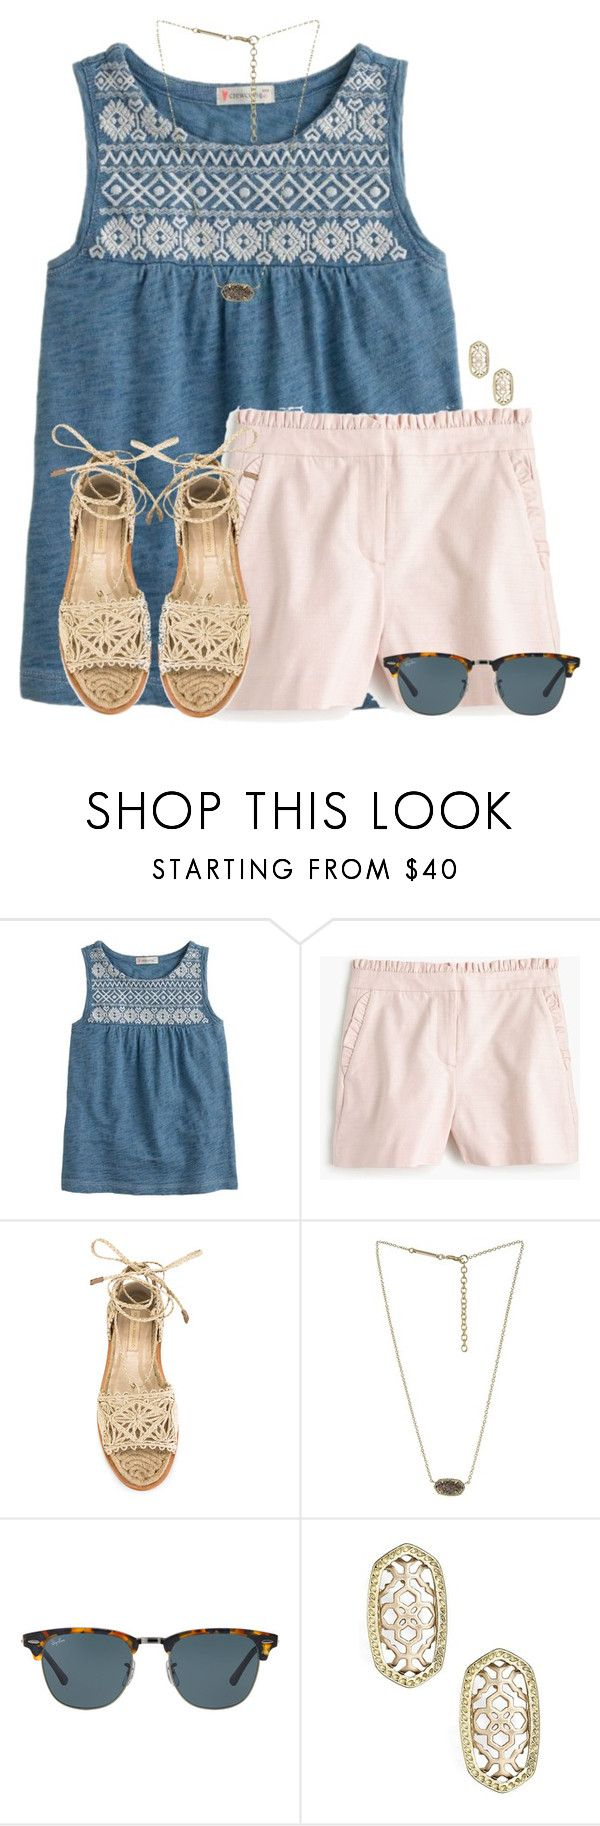 """When your teacher doesn't care so he lets you play cards:)"" by flroasburn on Polyvore featuring J.Crew, Paloma Barceló, Kendra Scott and Ray-Ban"